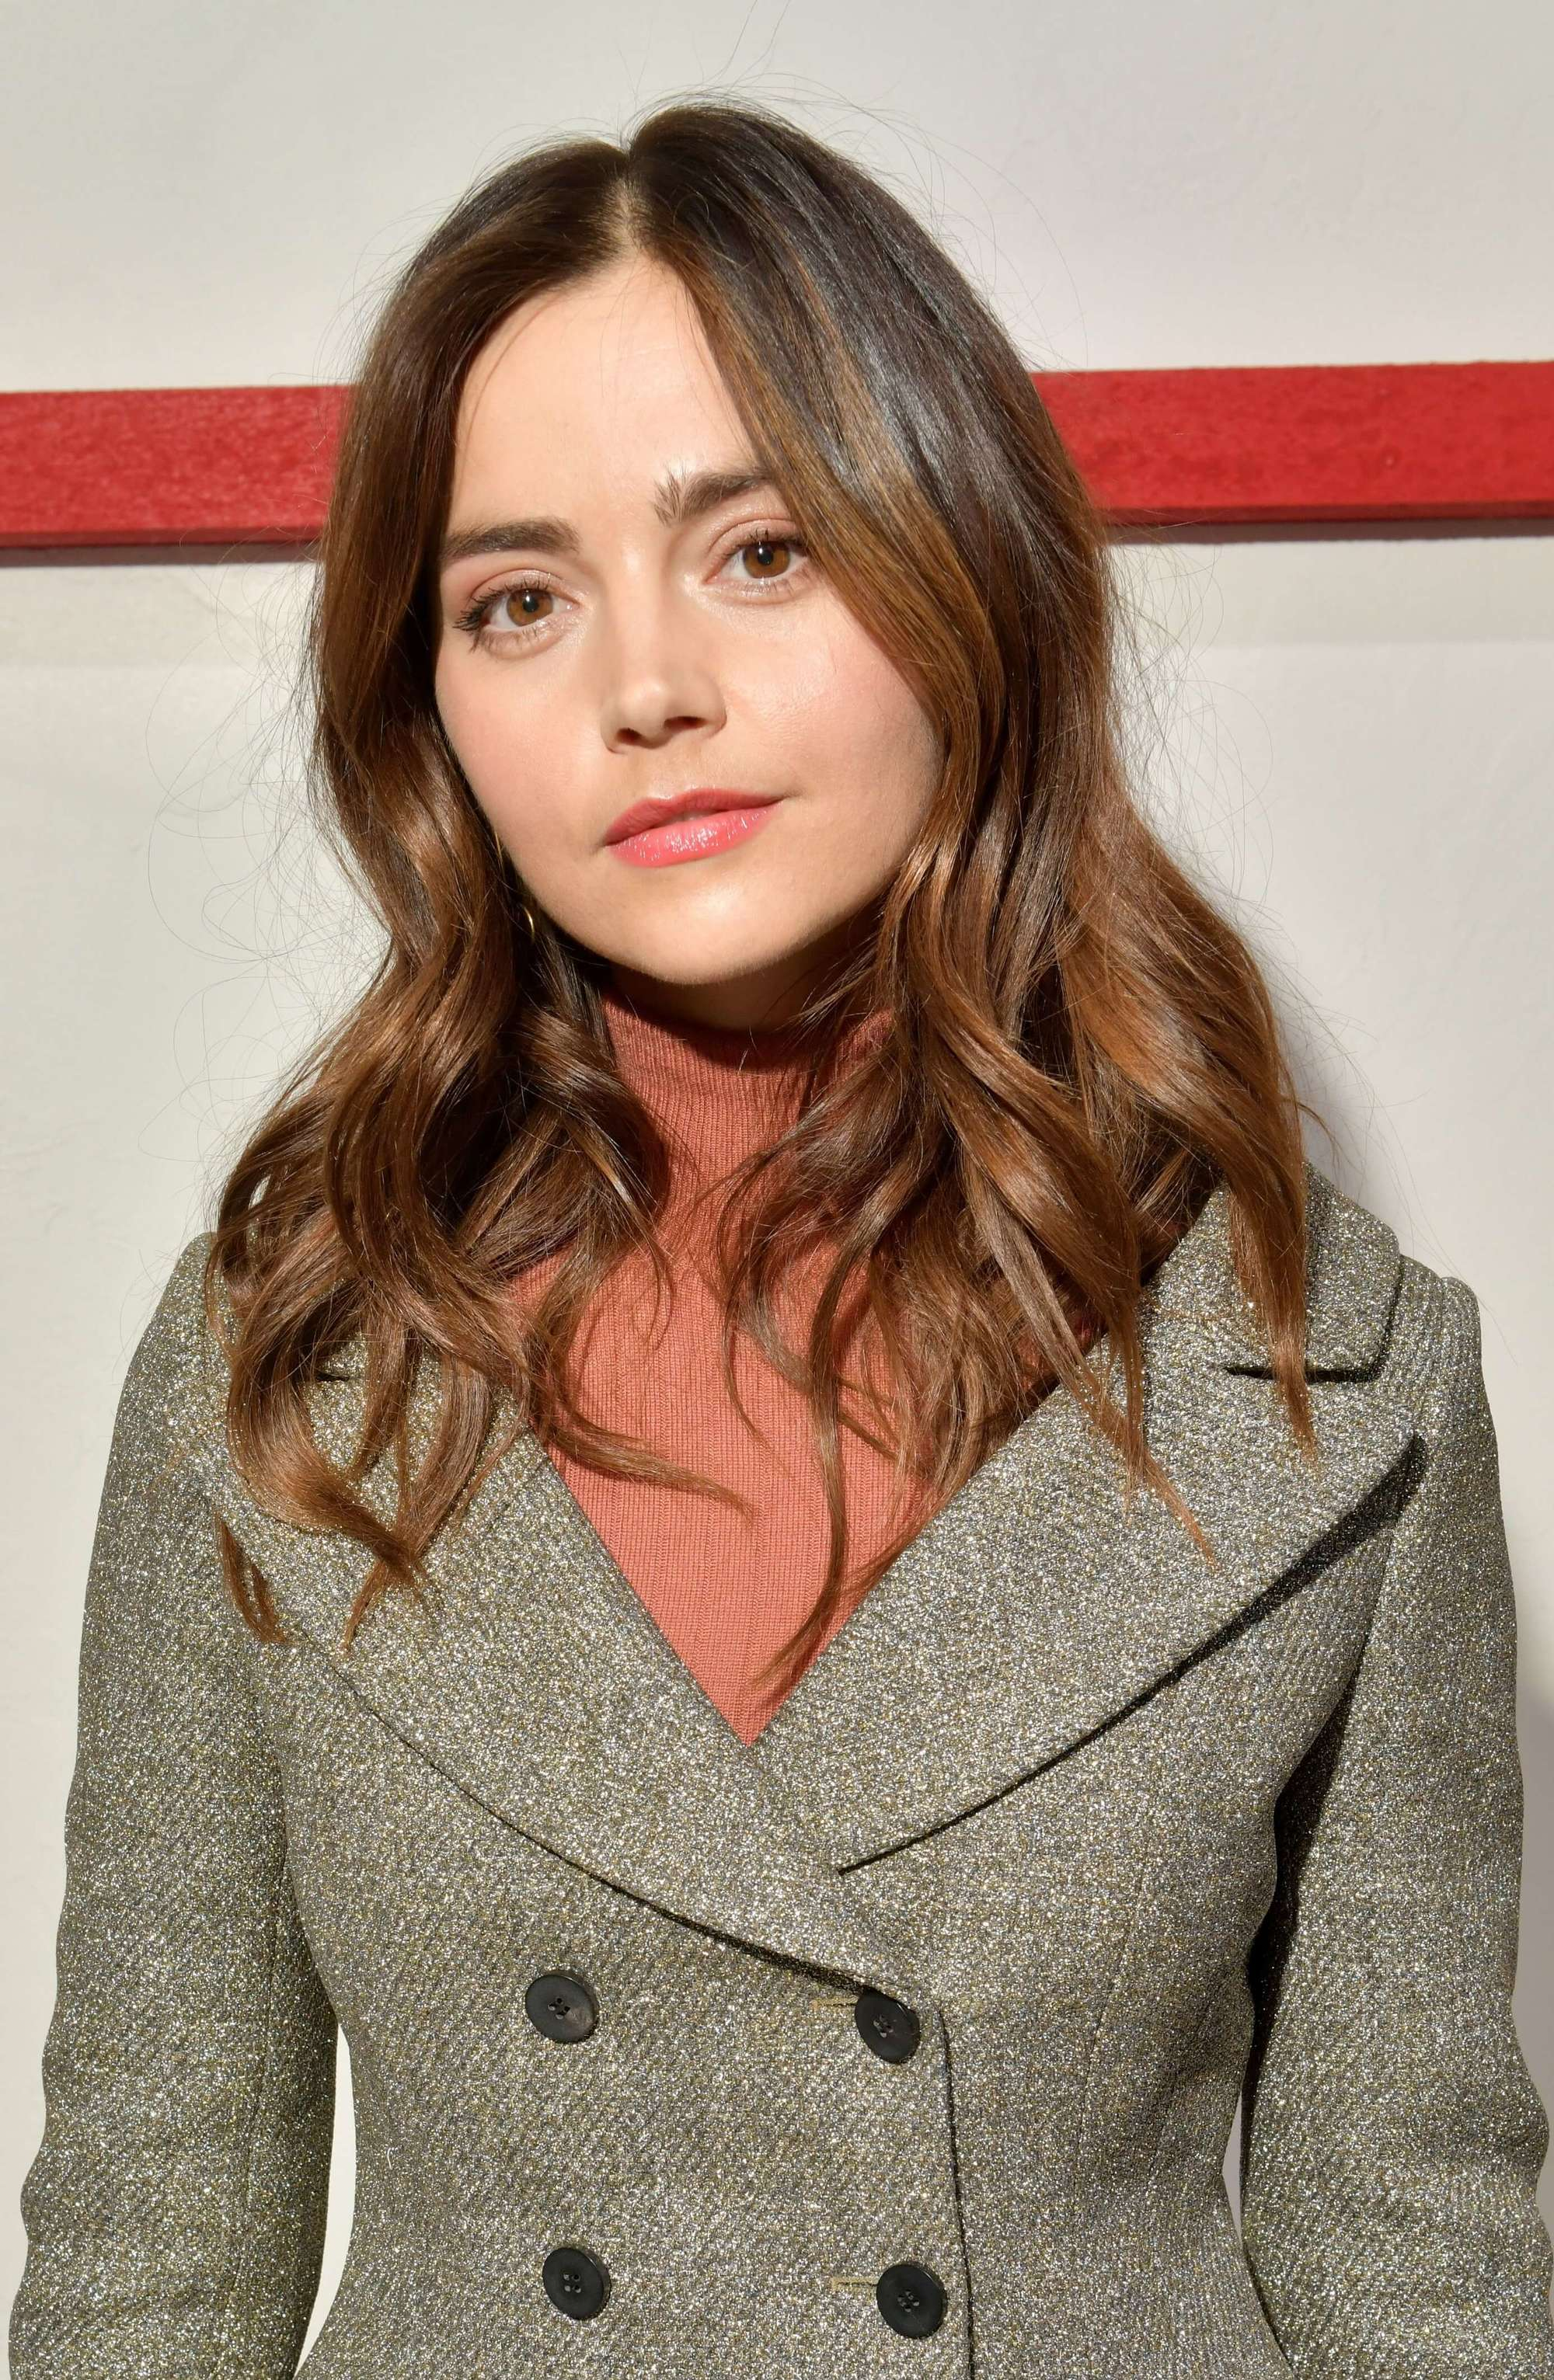 Medium hairstyles for thick hair: Jenna Coleman with wavy brown shoulder length hair